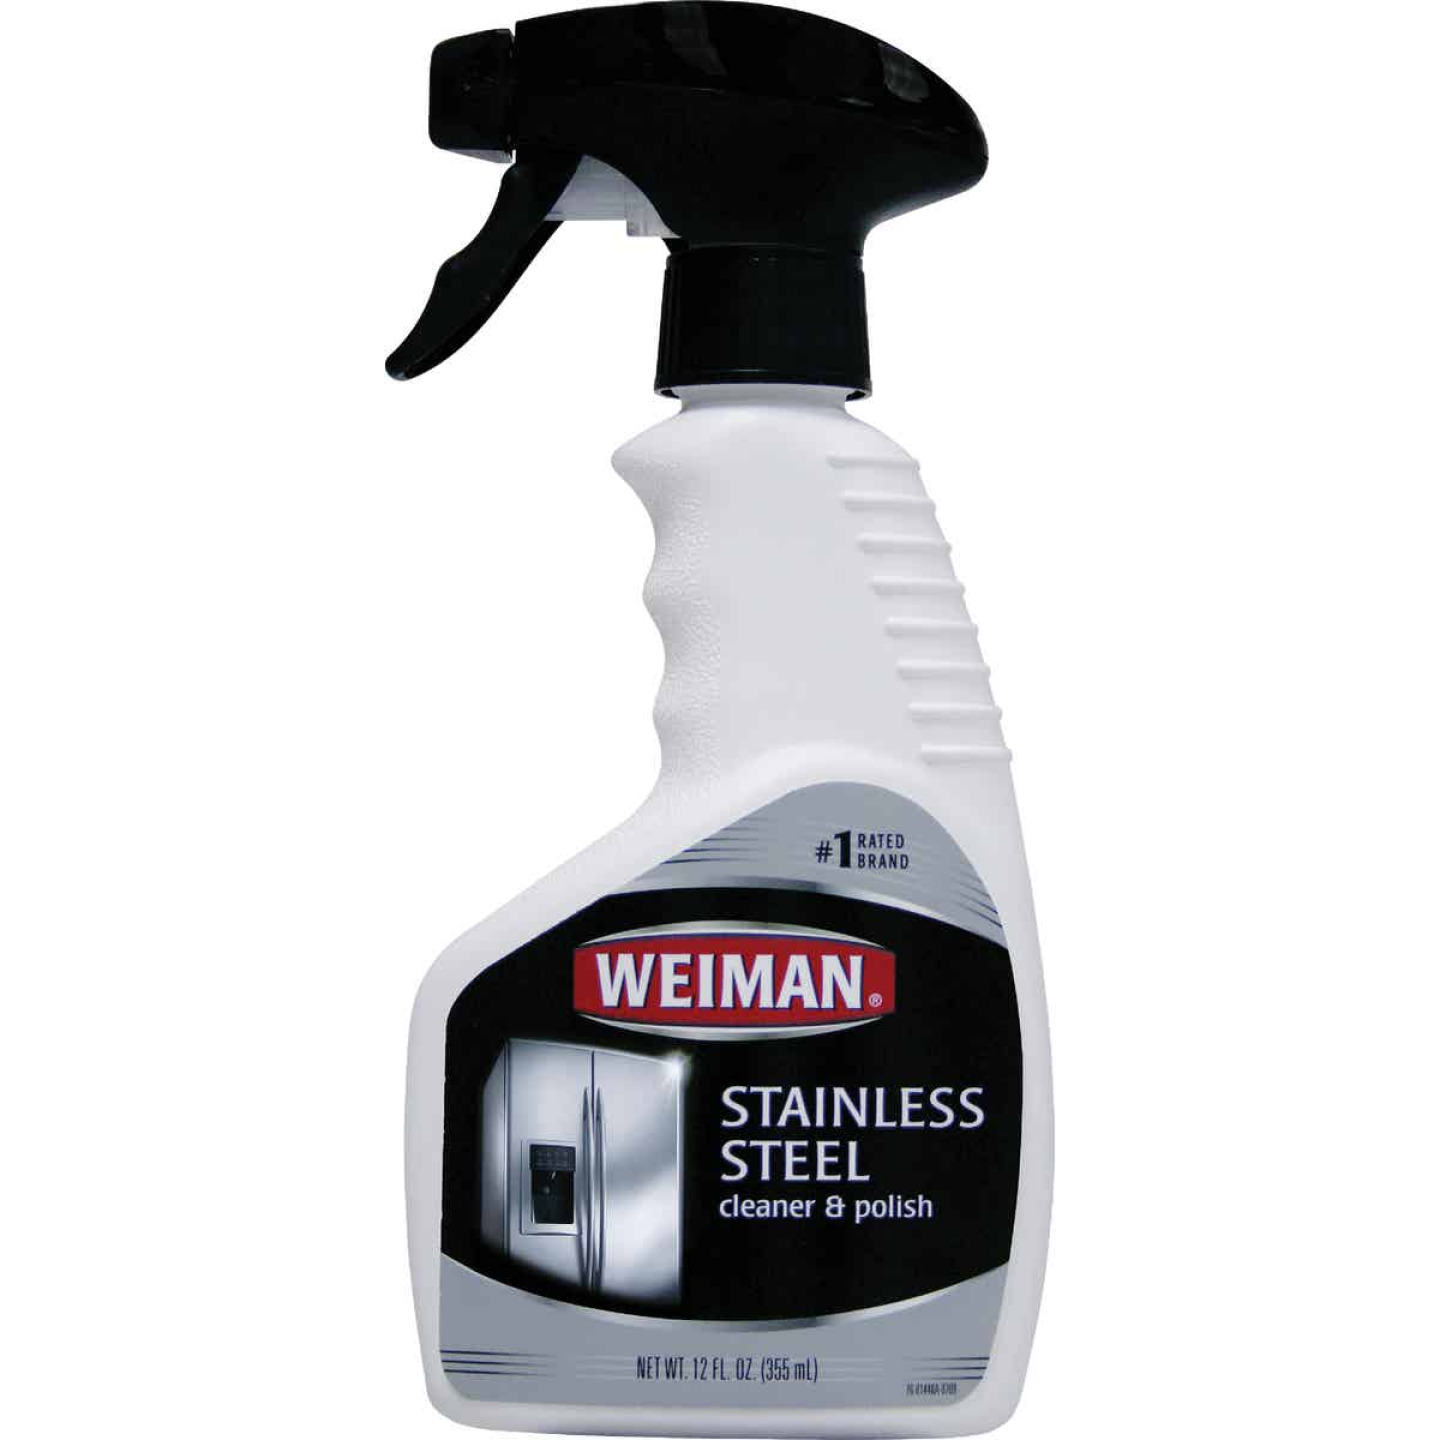 Weiman 12 Oz. Stainless Steel Cleaner & Polish Image 1